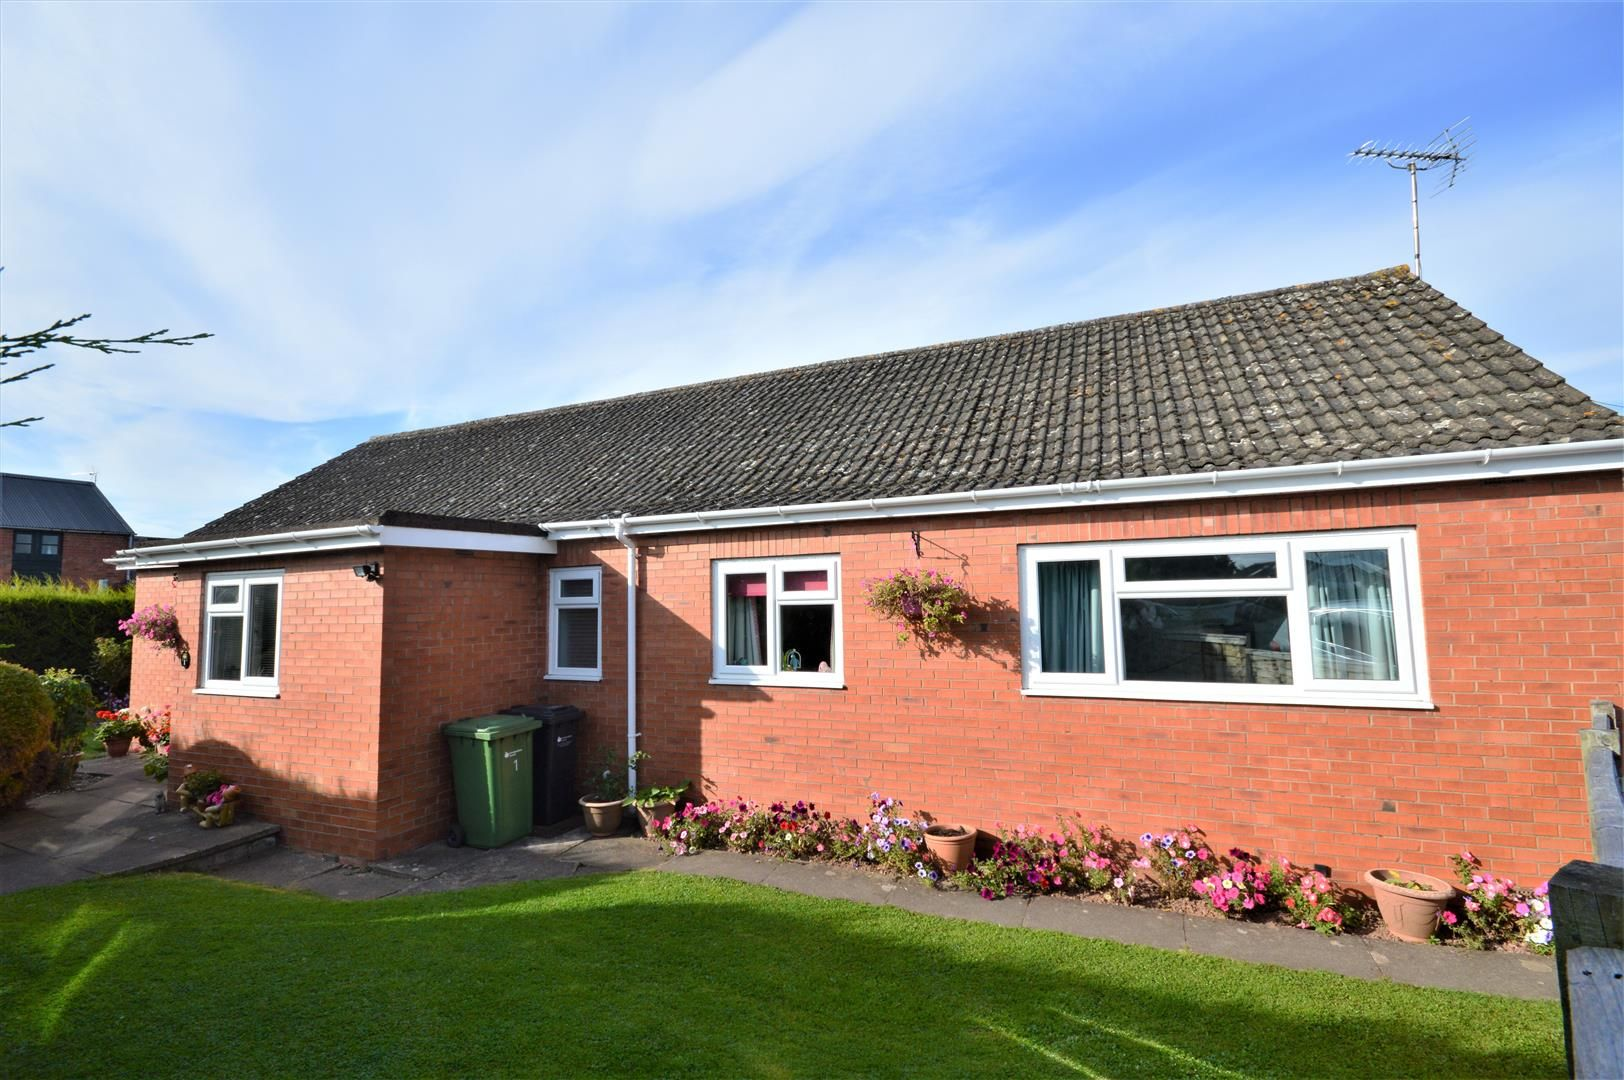 4 bed detached-bungalow for sale in Marden  - Property Image 15